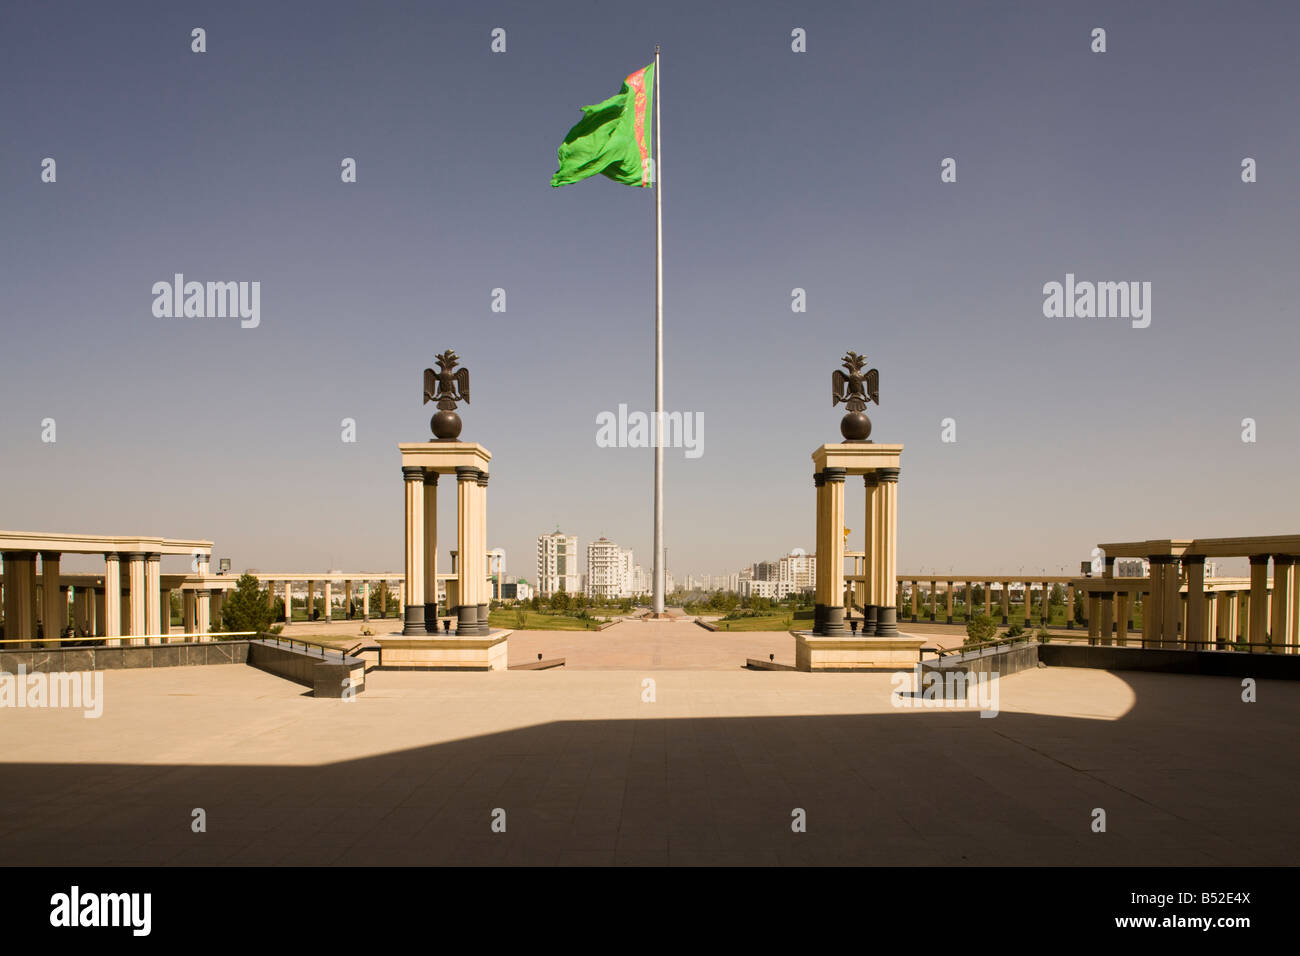 view from National Museum towards city, Ashgabat, Turkmenistan, showing the former world's tallest flagpole - Stock Image